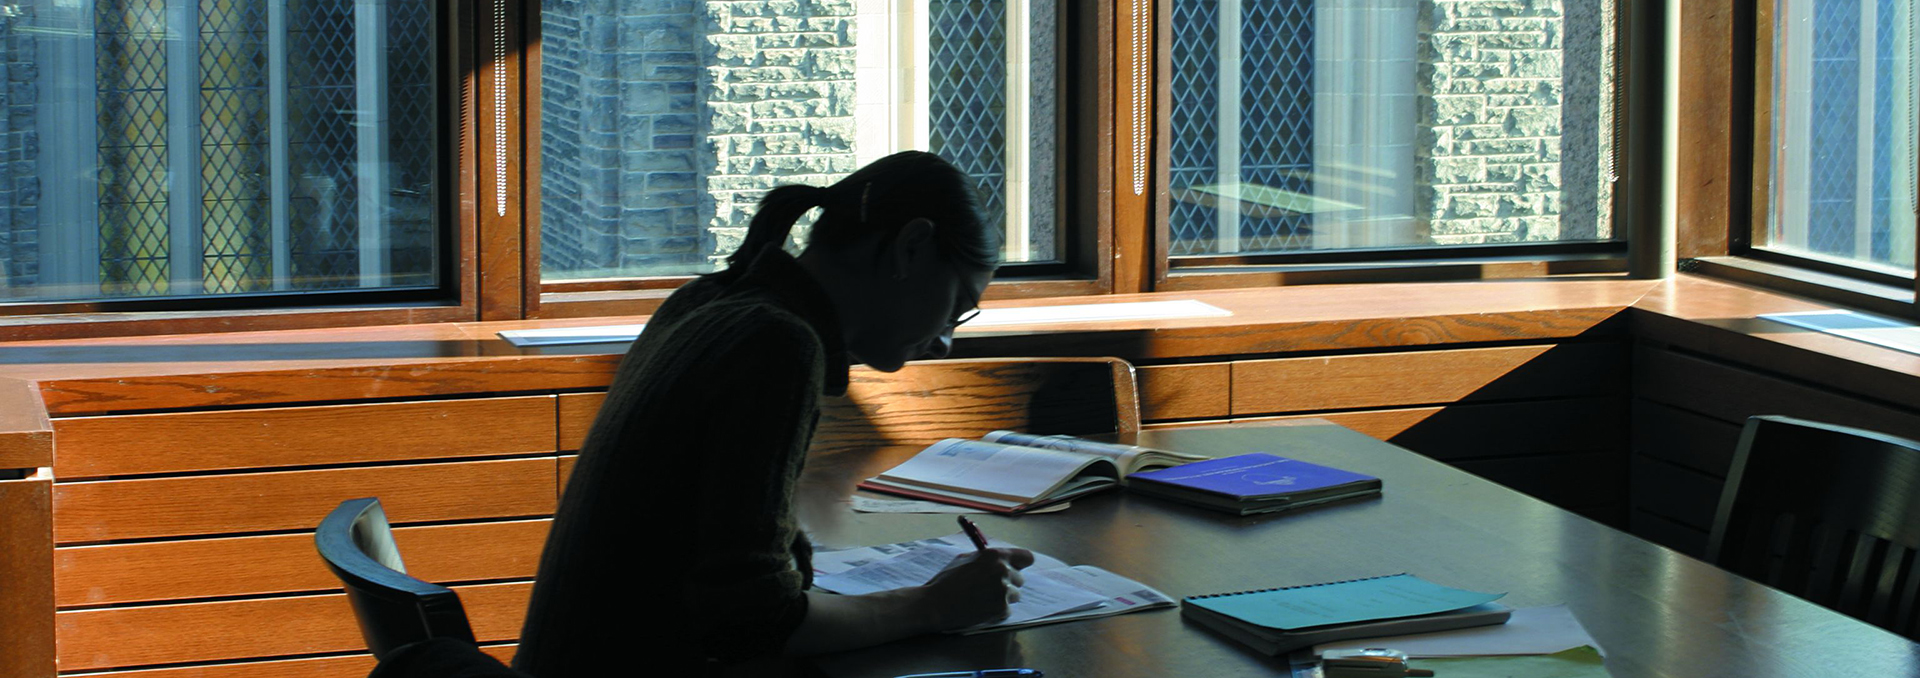 Student studying at a table in the John W Graham Library